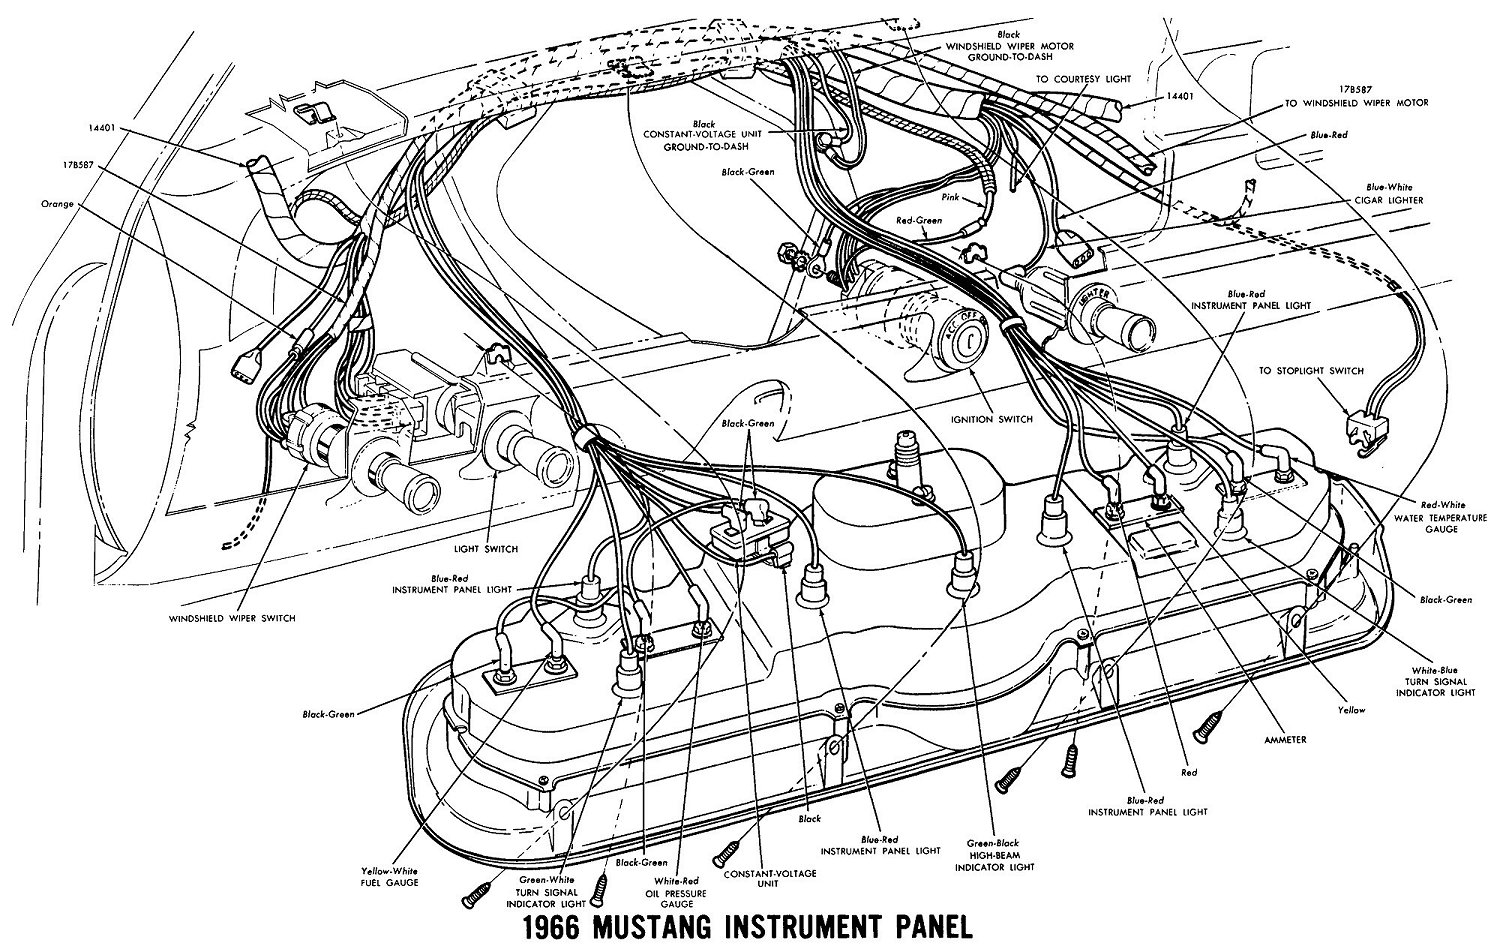 66InstrumentWiring lelu's 66 mustang 1966 mustang wiring diagrams 1966 mustang wiring diagrams at webbmarketing.co